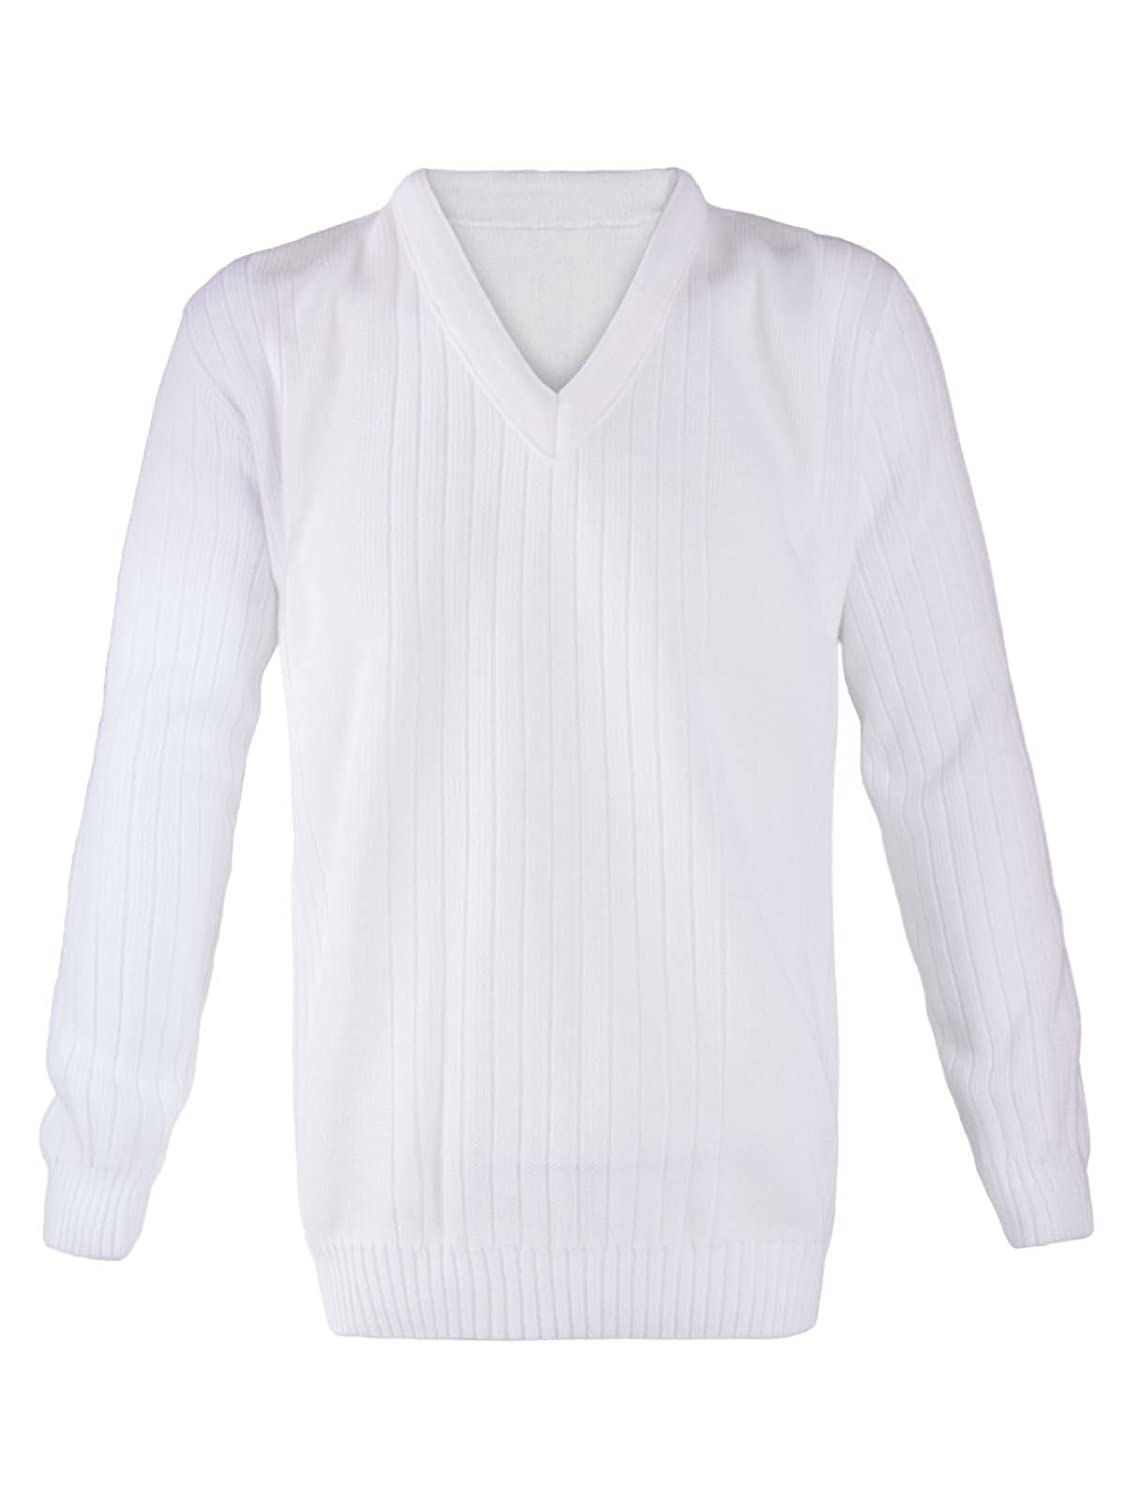 Rimi Hanger Mens Lawn Bowling Long Sleeve V Neck Knitted Jumper Adults Ribbed White Sweater S//5XL